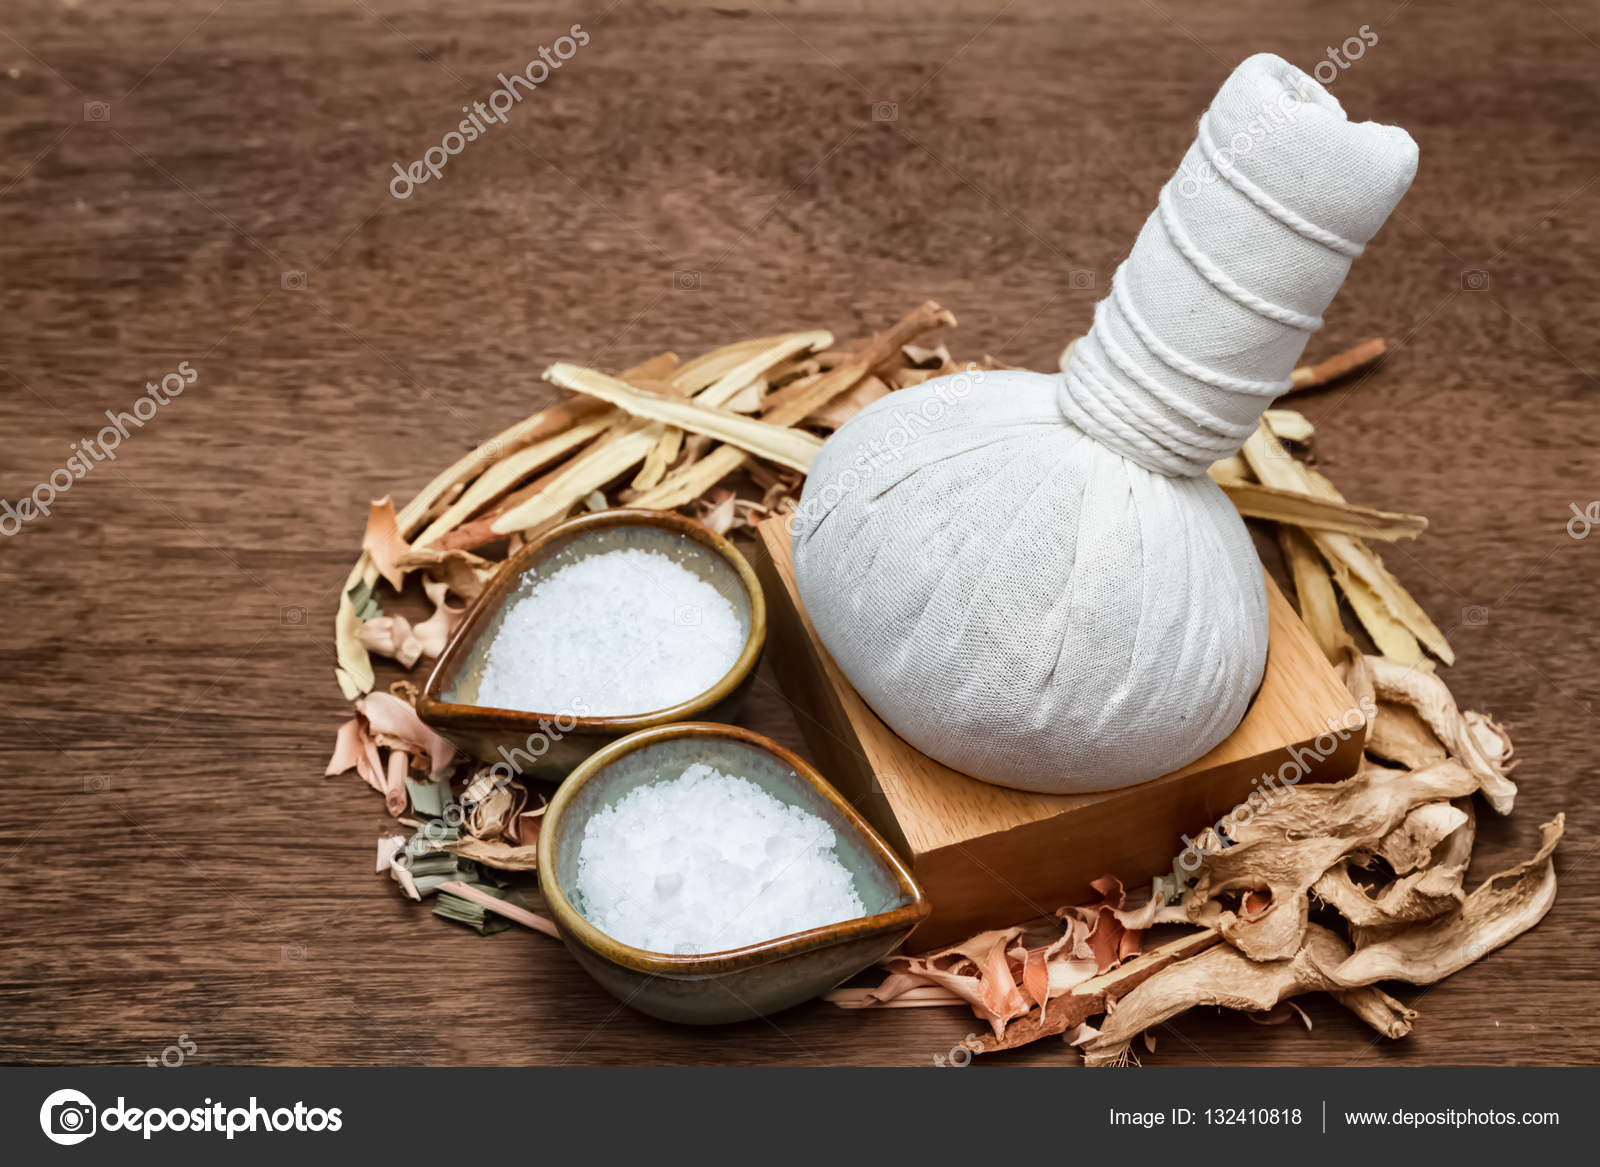 Borneol camphor,liquorice,ginger with lemon grass use for